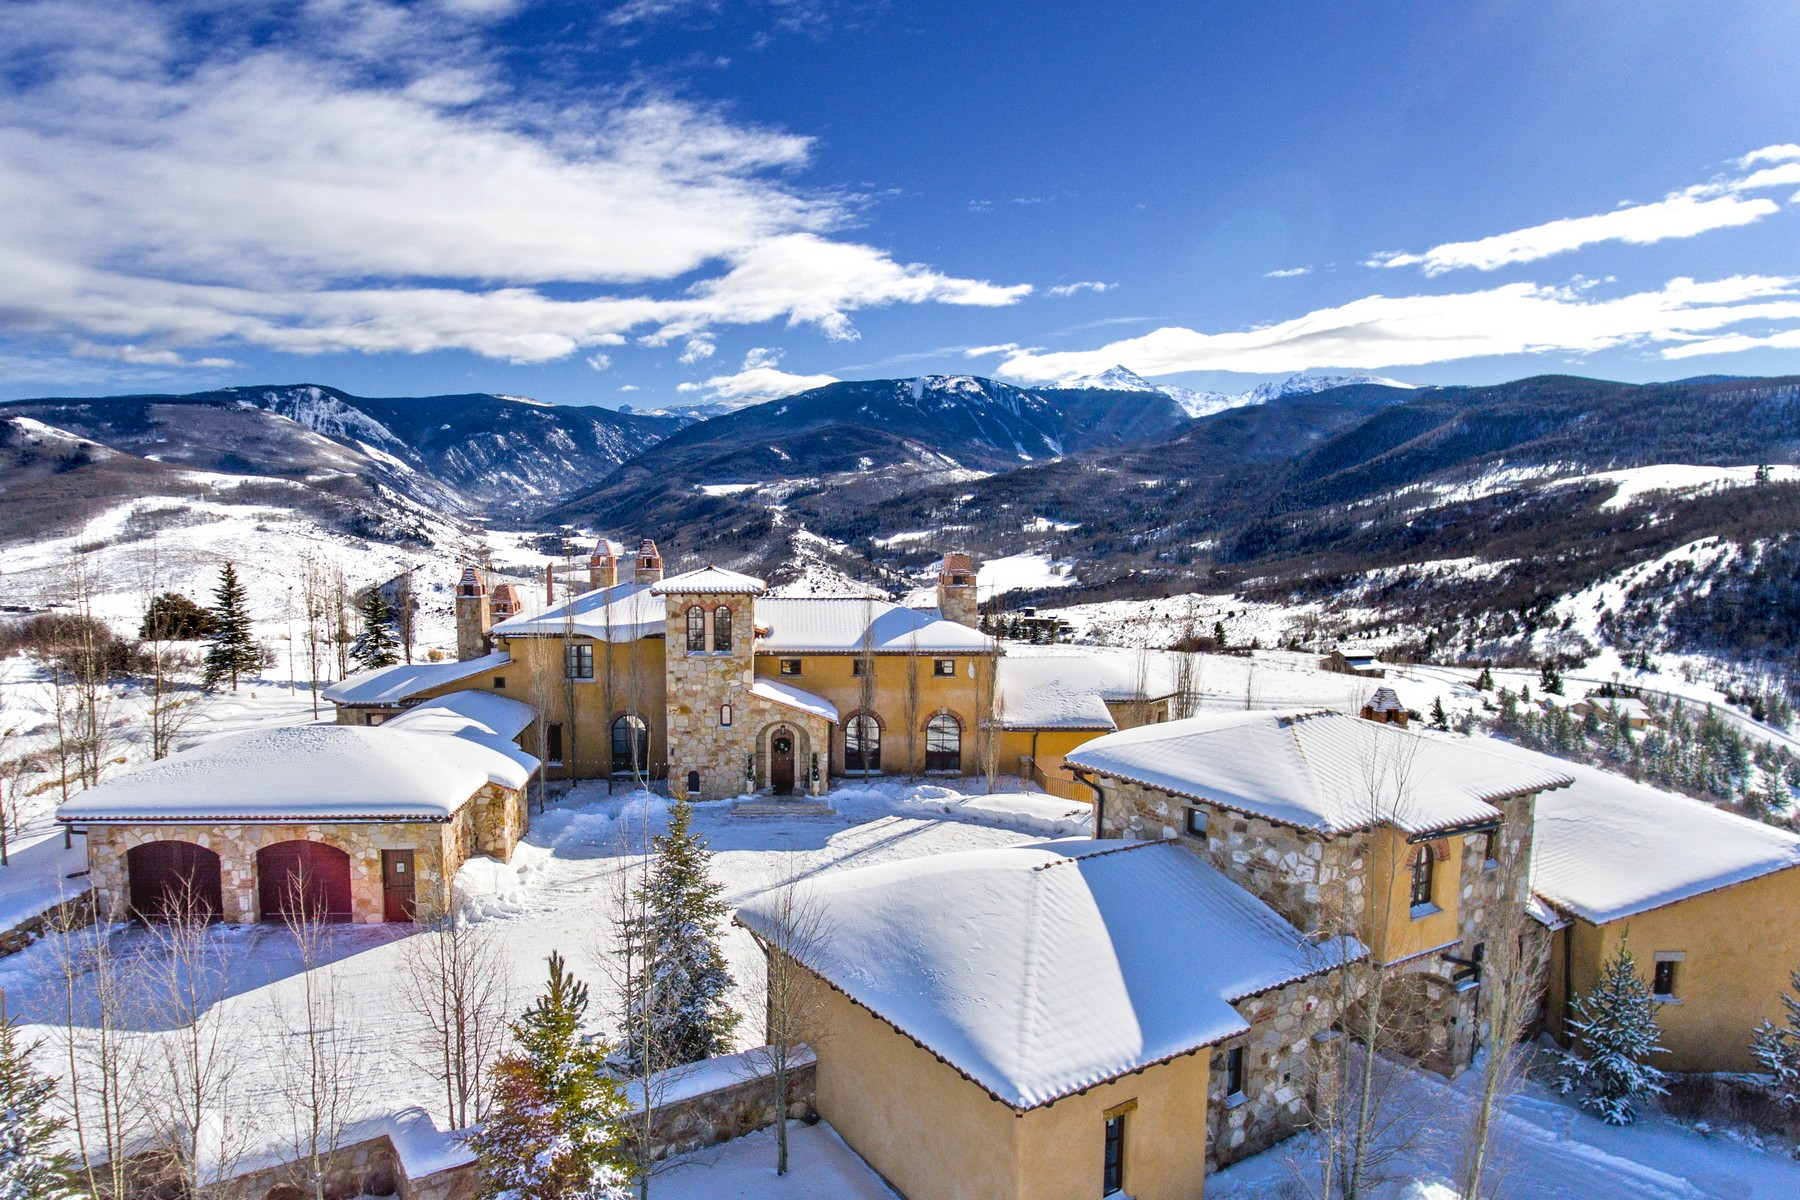 Moradia para Venda às Luxury Vail Valley Estate 1548 Via La Favorita Edwards, Colorado, 81632 Estados Unidos